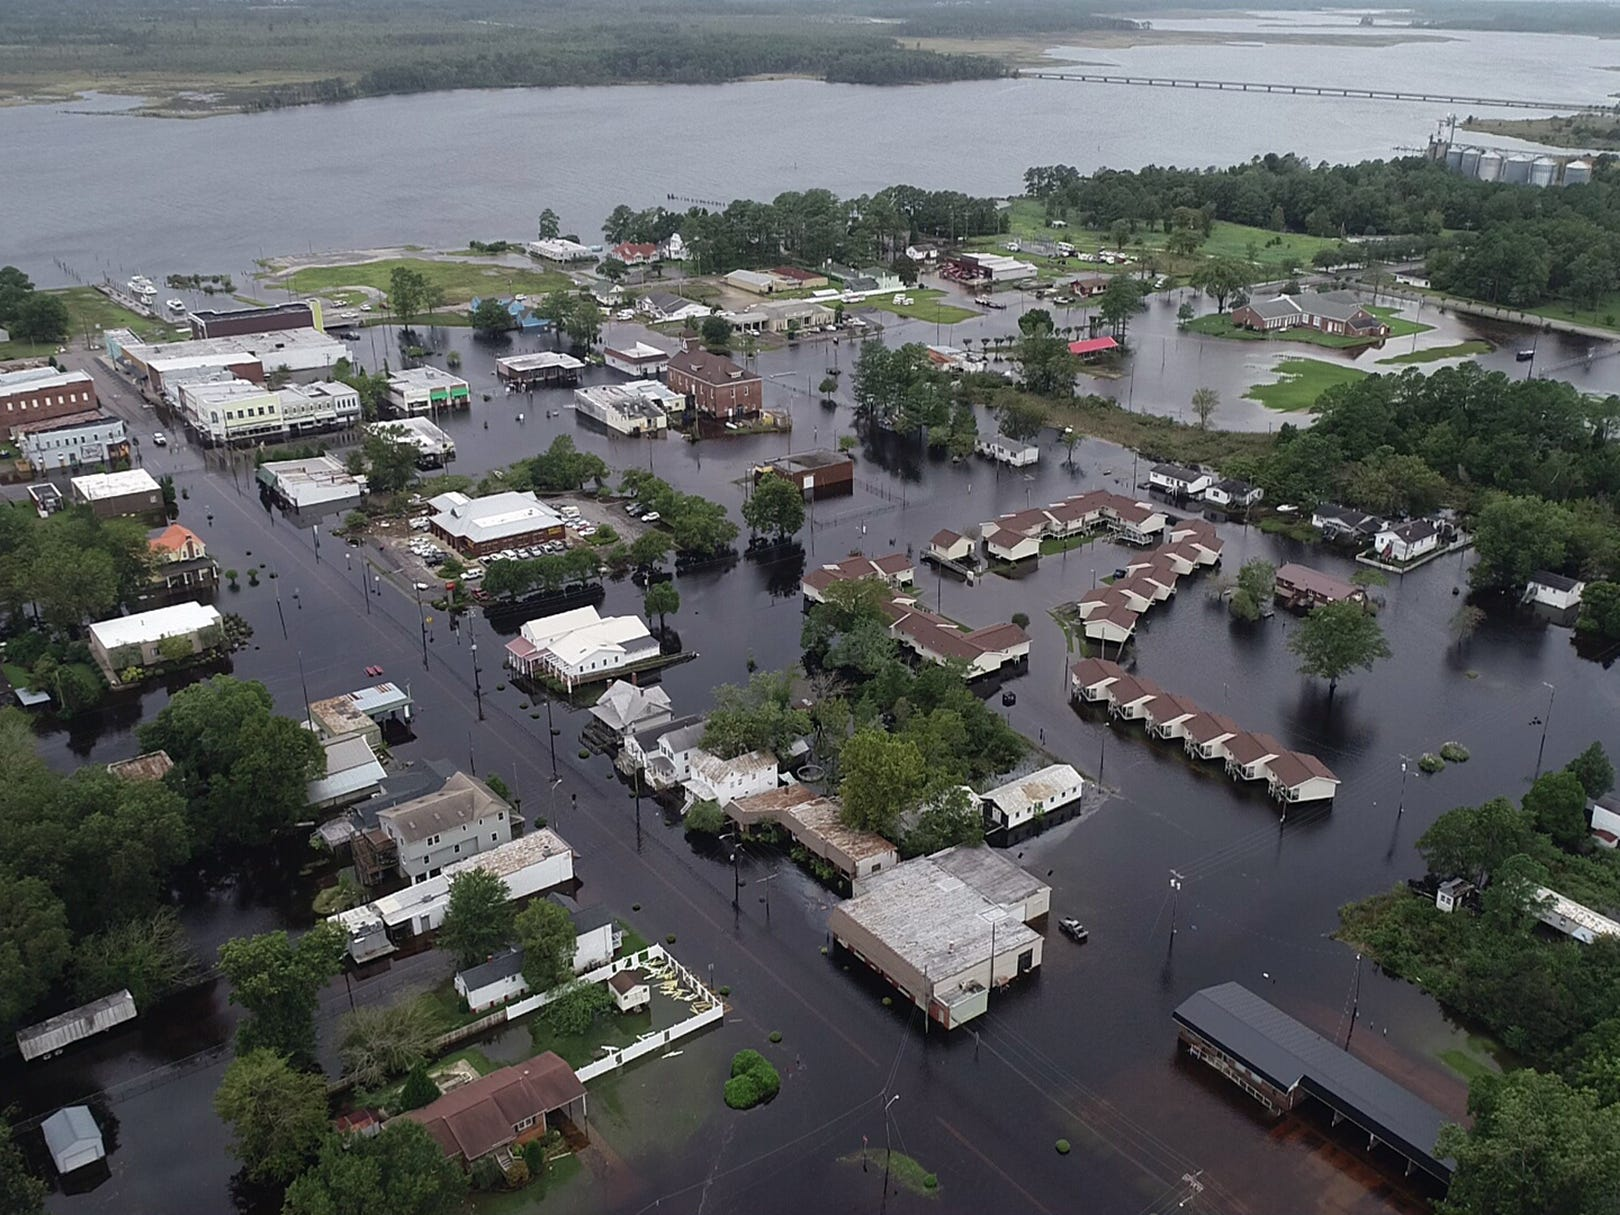 A Drone photo shows flooding in Belhaven, N.C. on Saturday, Sept. 15, 2018. Hurricane Florence made landfall in North Carolina as a Category 1 storm Friday and at least five deaths have been attributed to the storm.